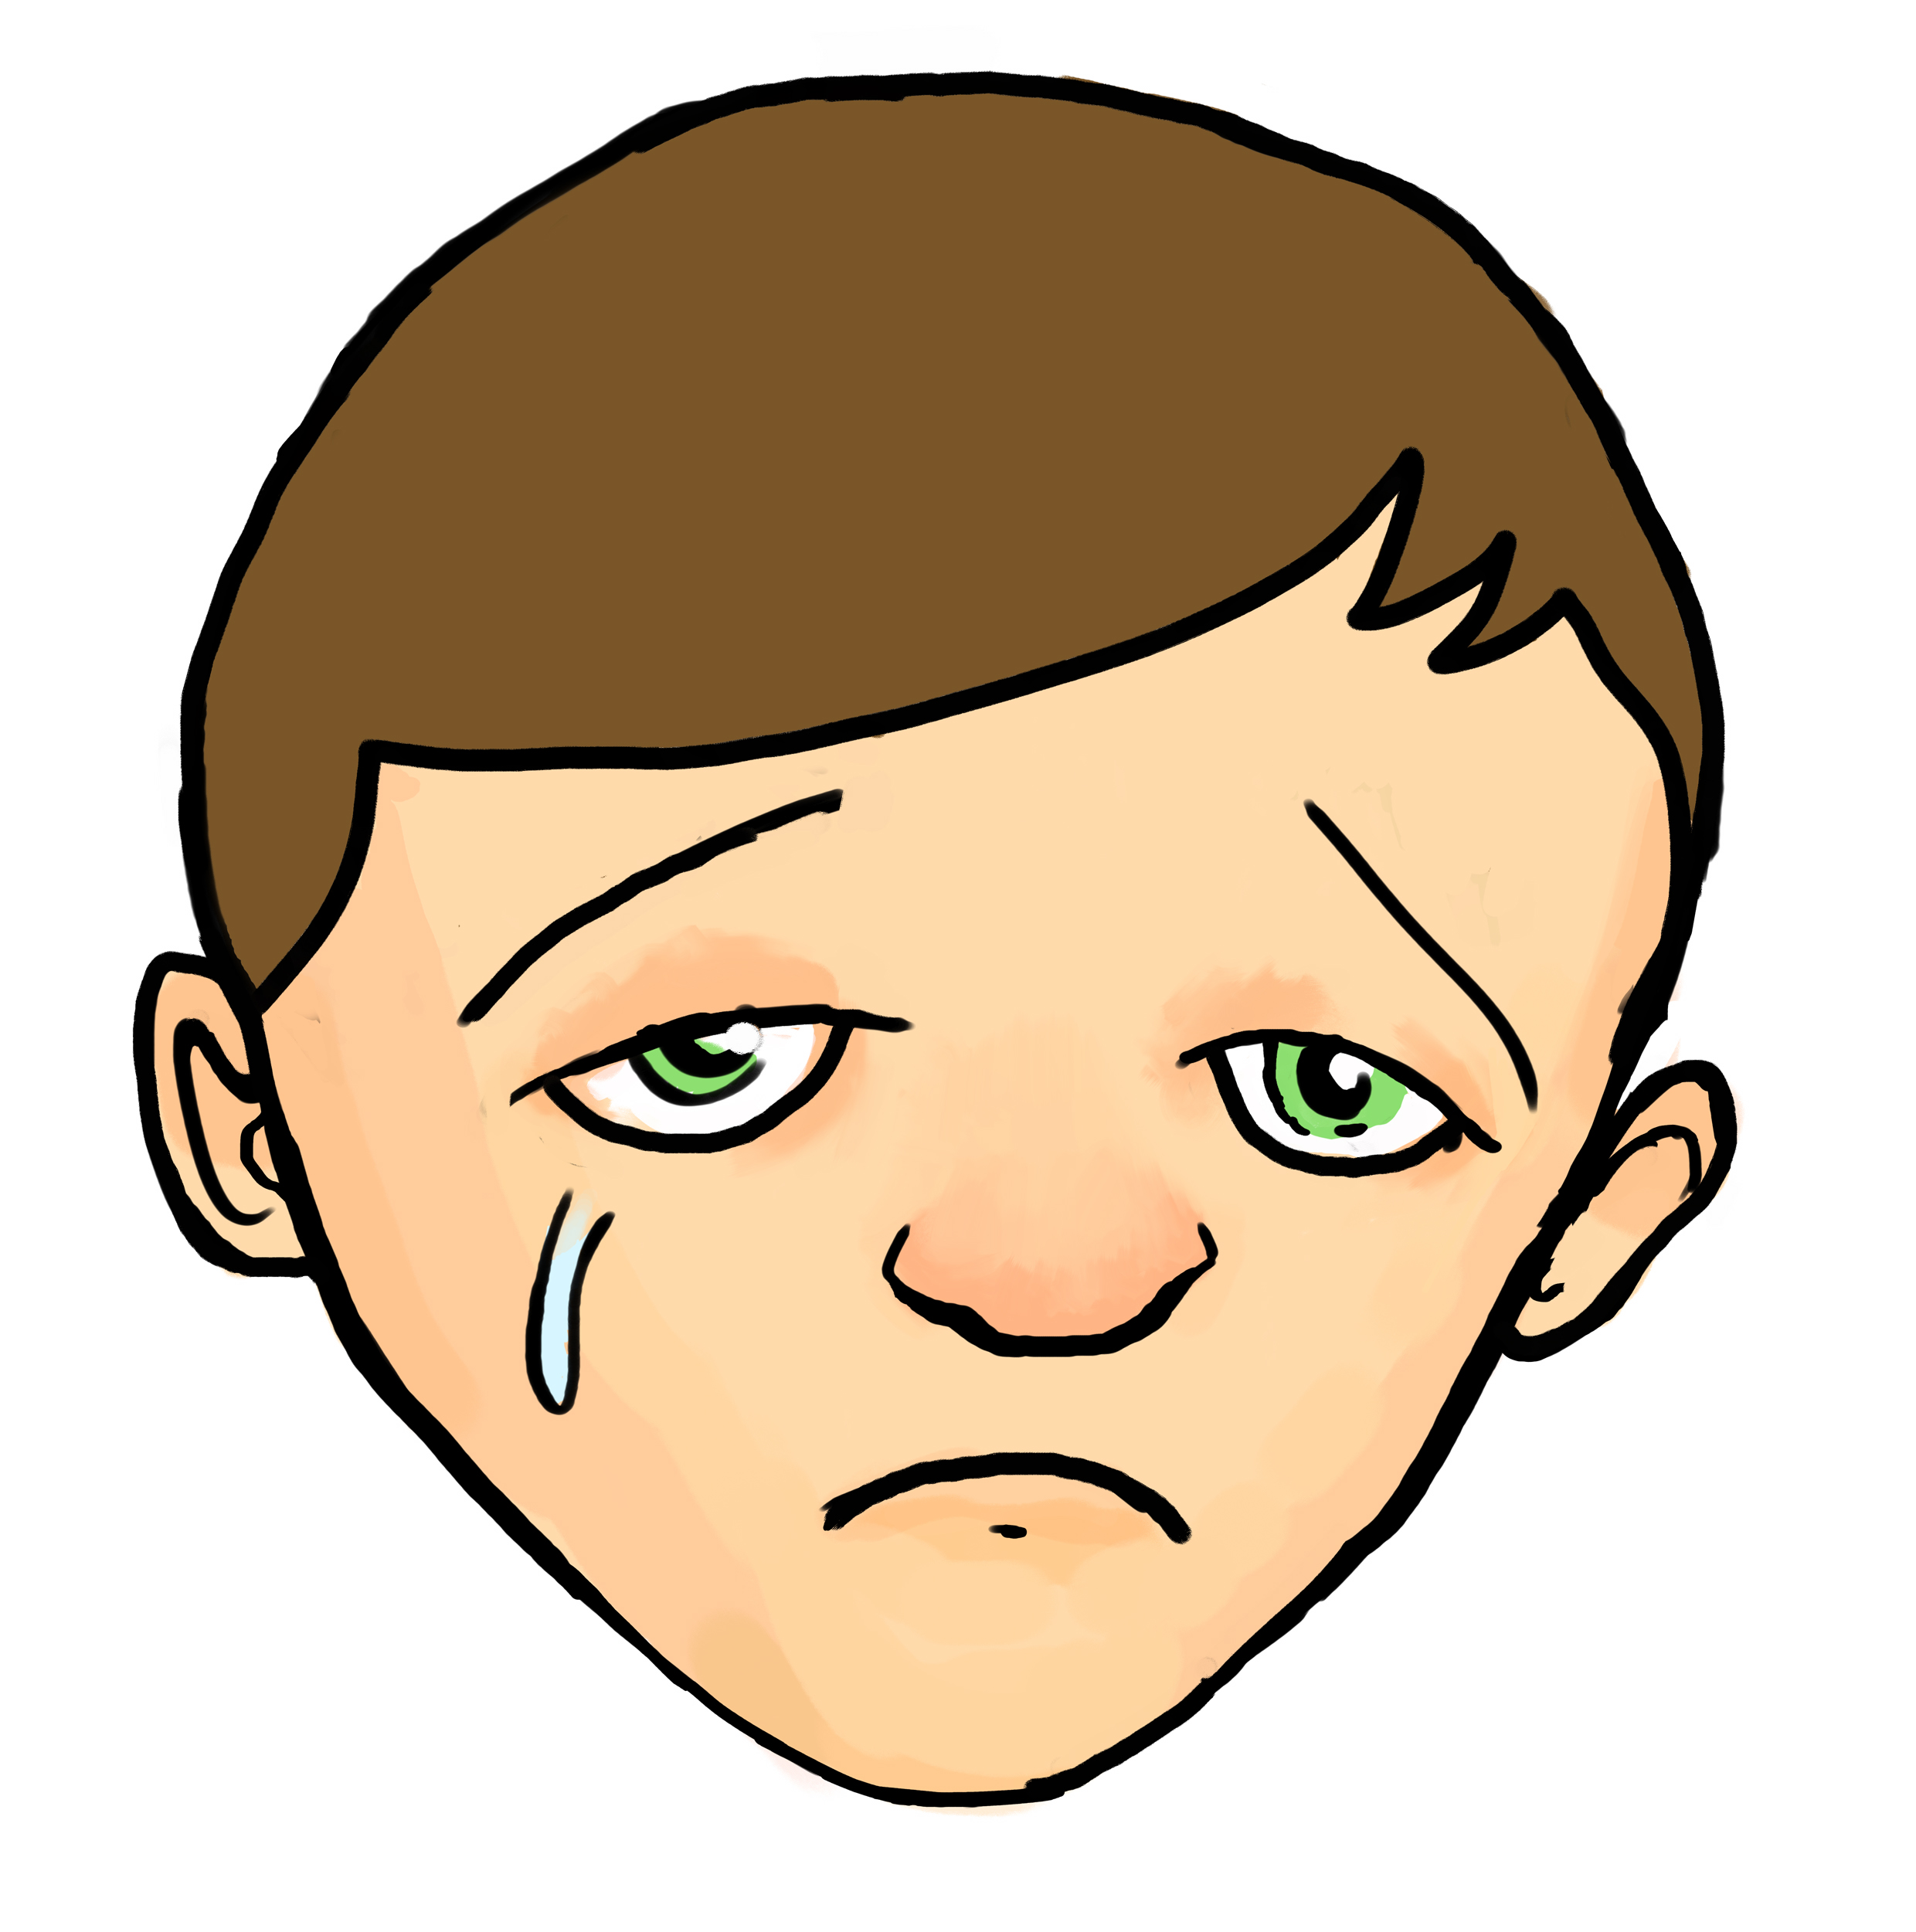 Emotions Faces Sad - ClipArt Best